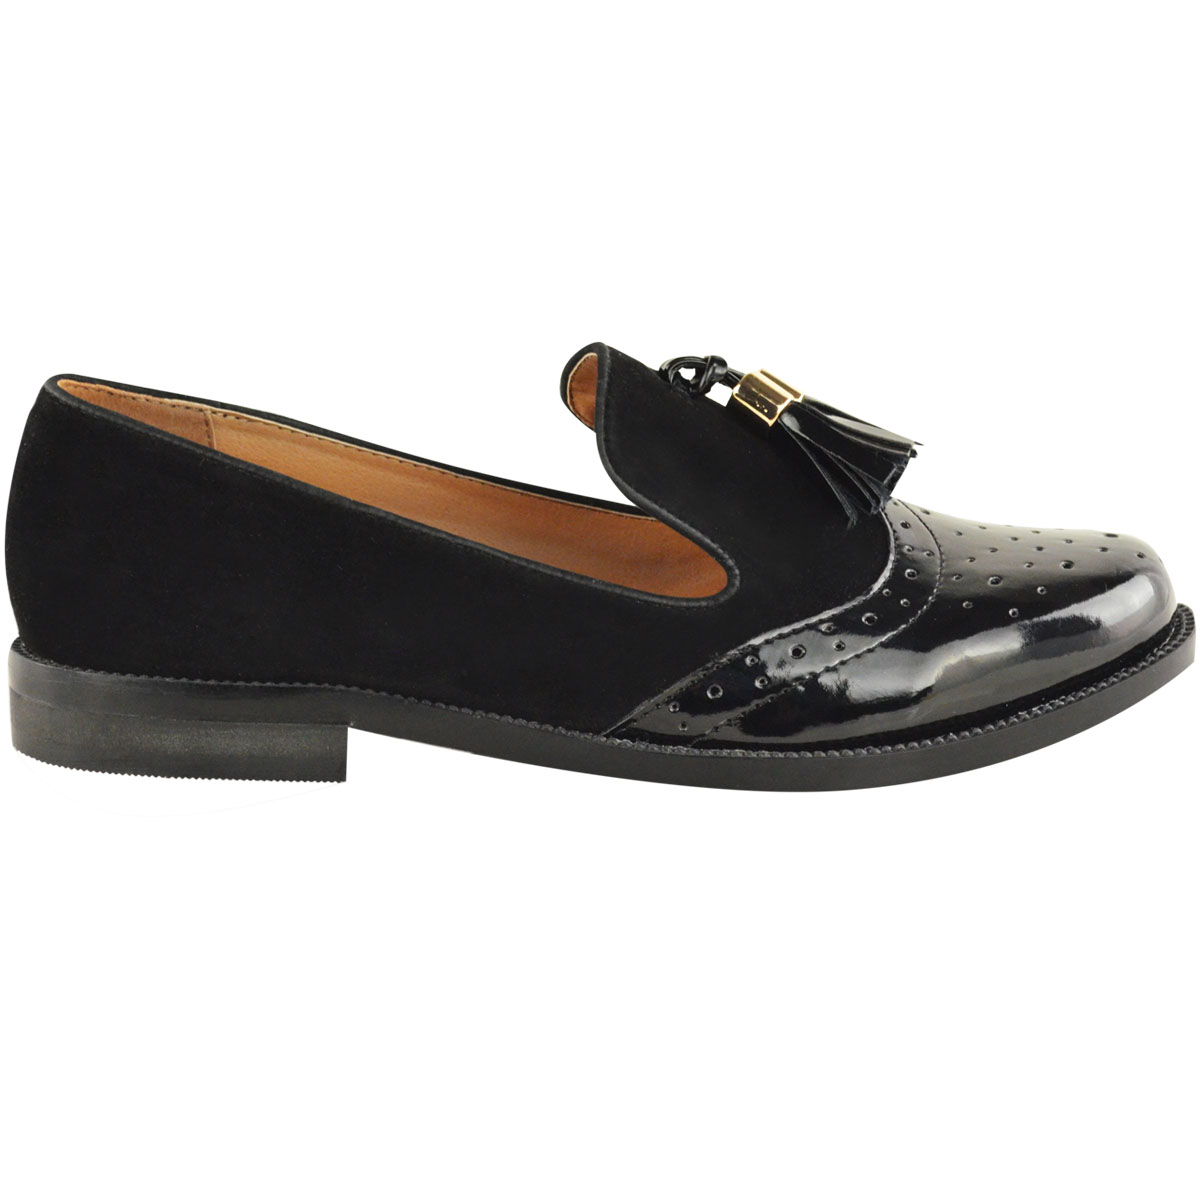 Womens Tassel Loafers Sale: Save Up to 50% Off! Shop report2day.ml's huge selection of Tassel Loafers for Women - Over 10 styles available. FREE Shipping .